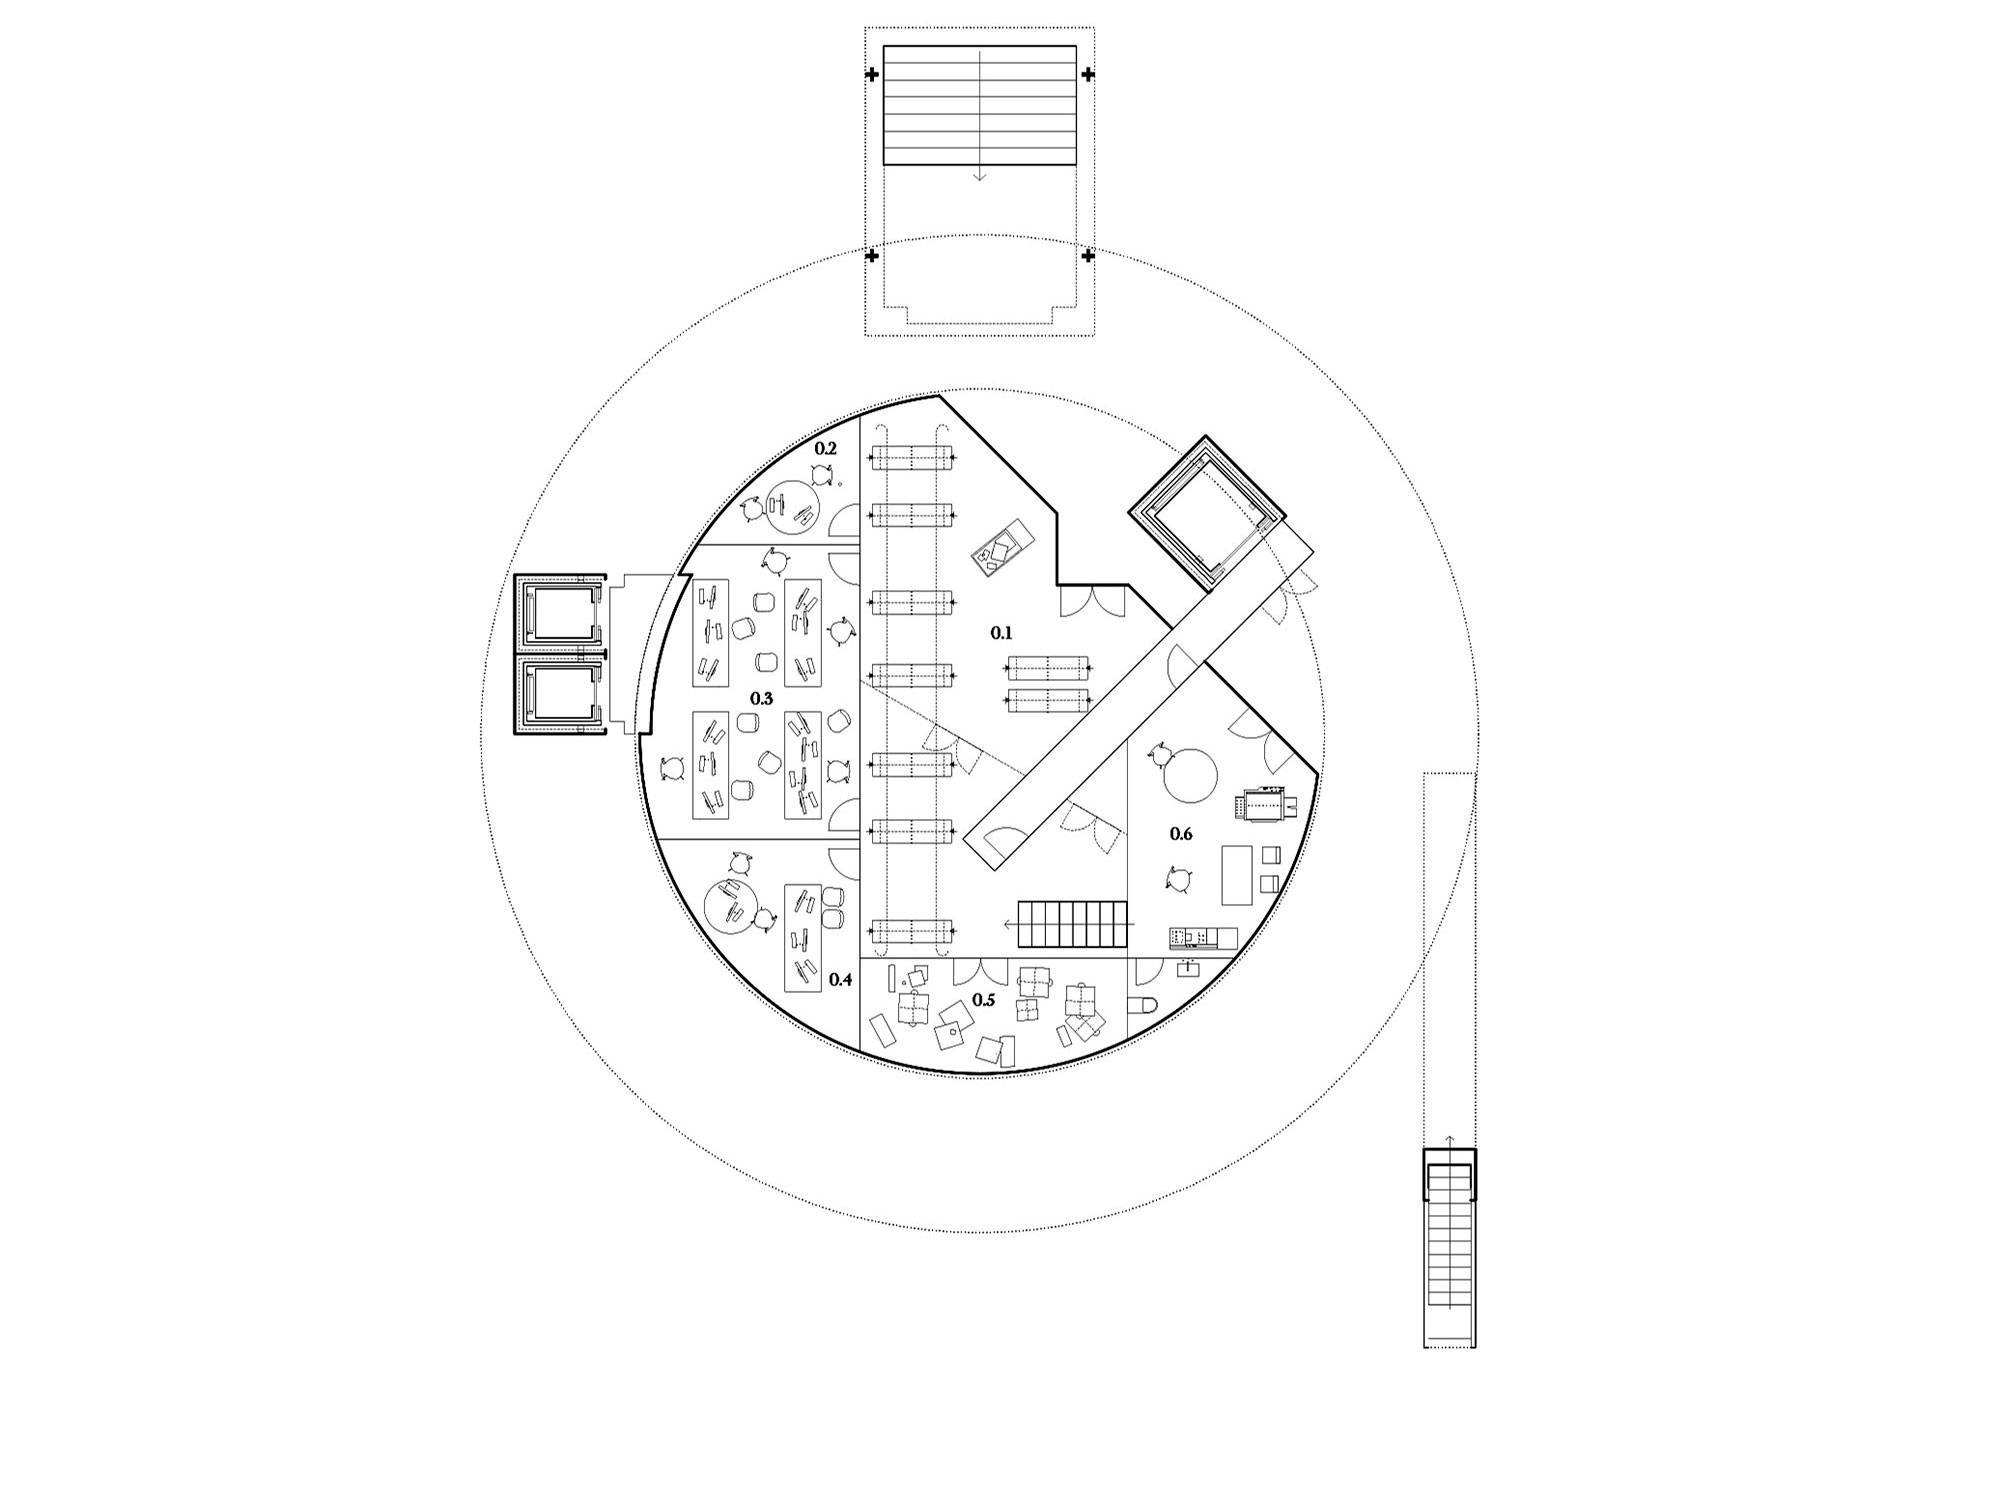 CECQ Circus Maximus Quarteira - Pitarch Library plan 5